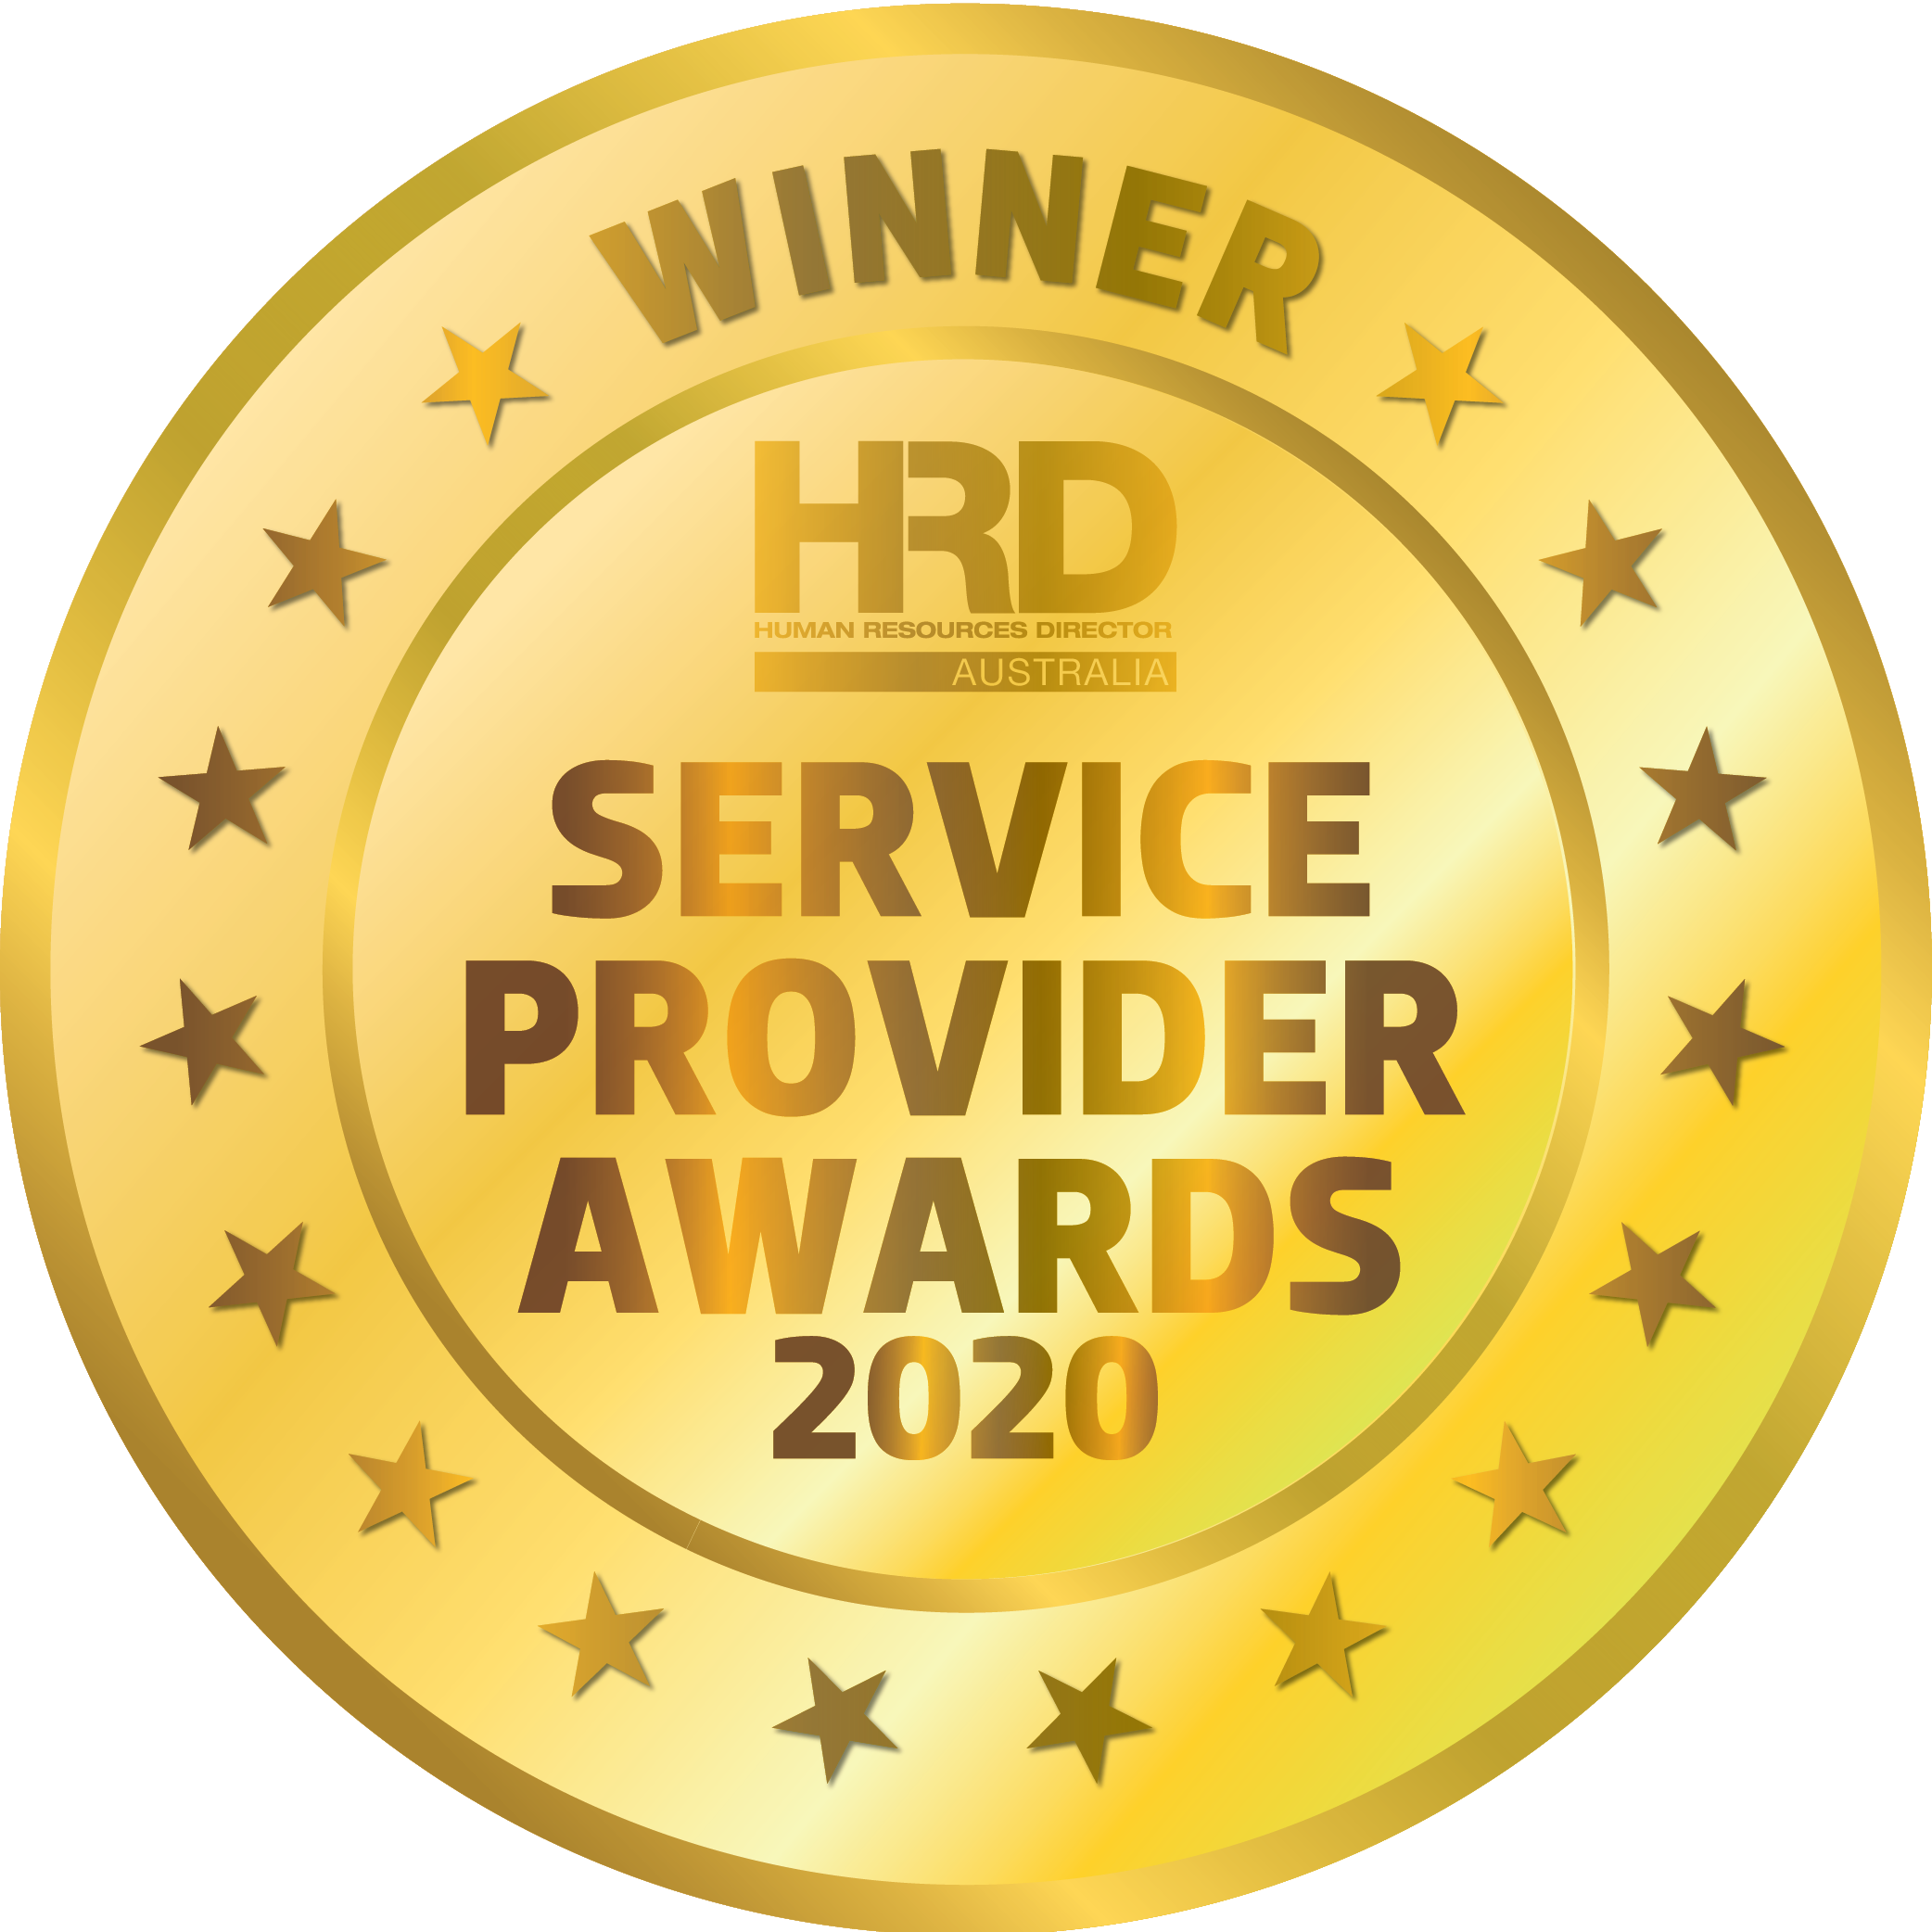 HR Service Provider Awards 2020